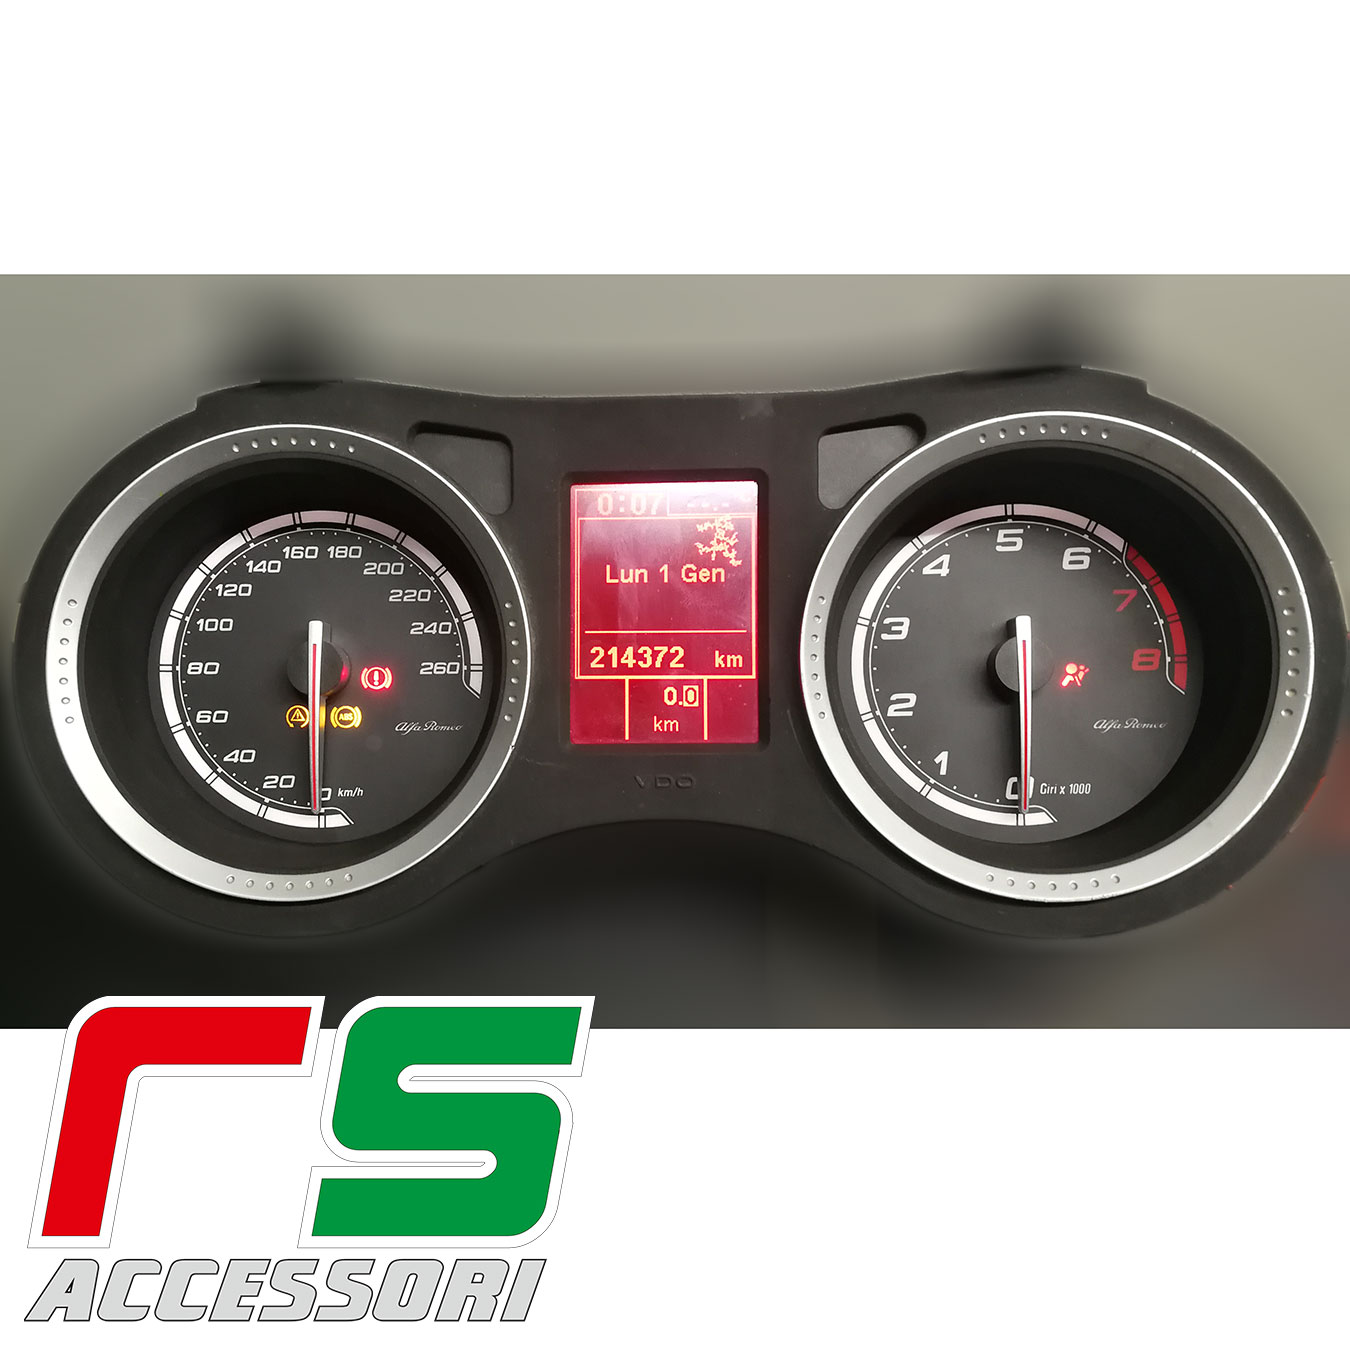 customized instrumentation Alfa Romeo 159 jts